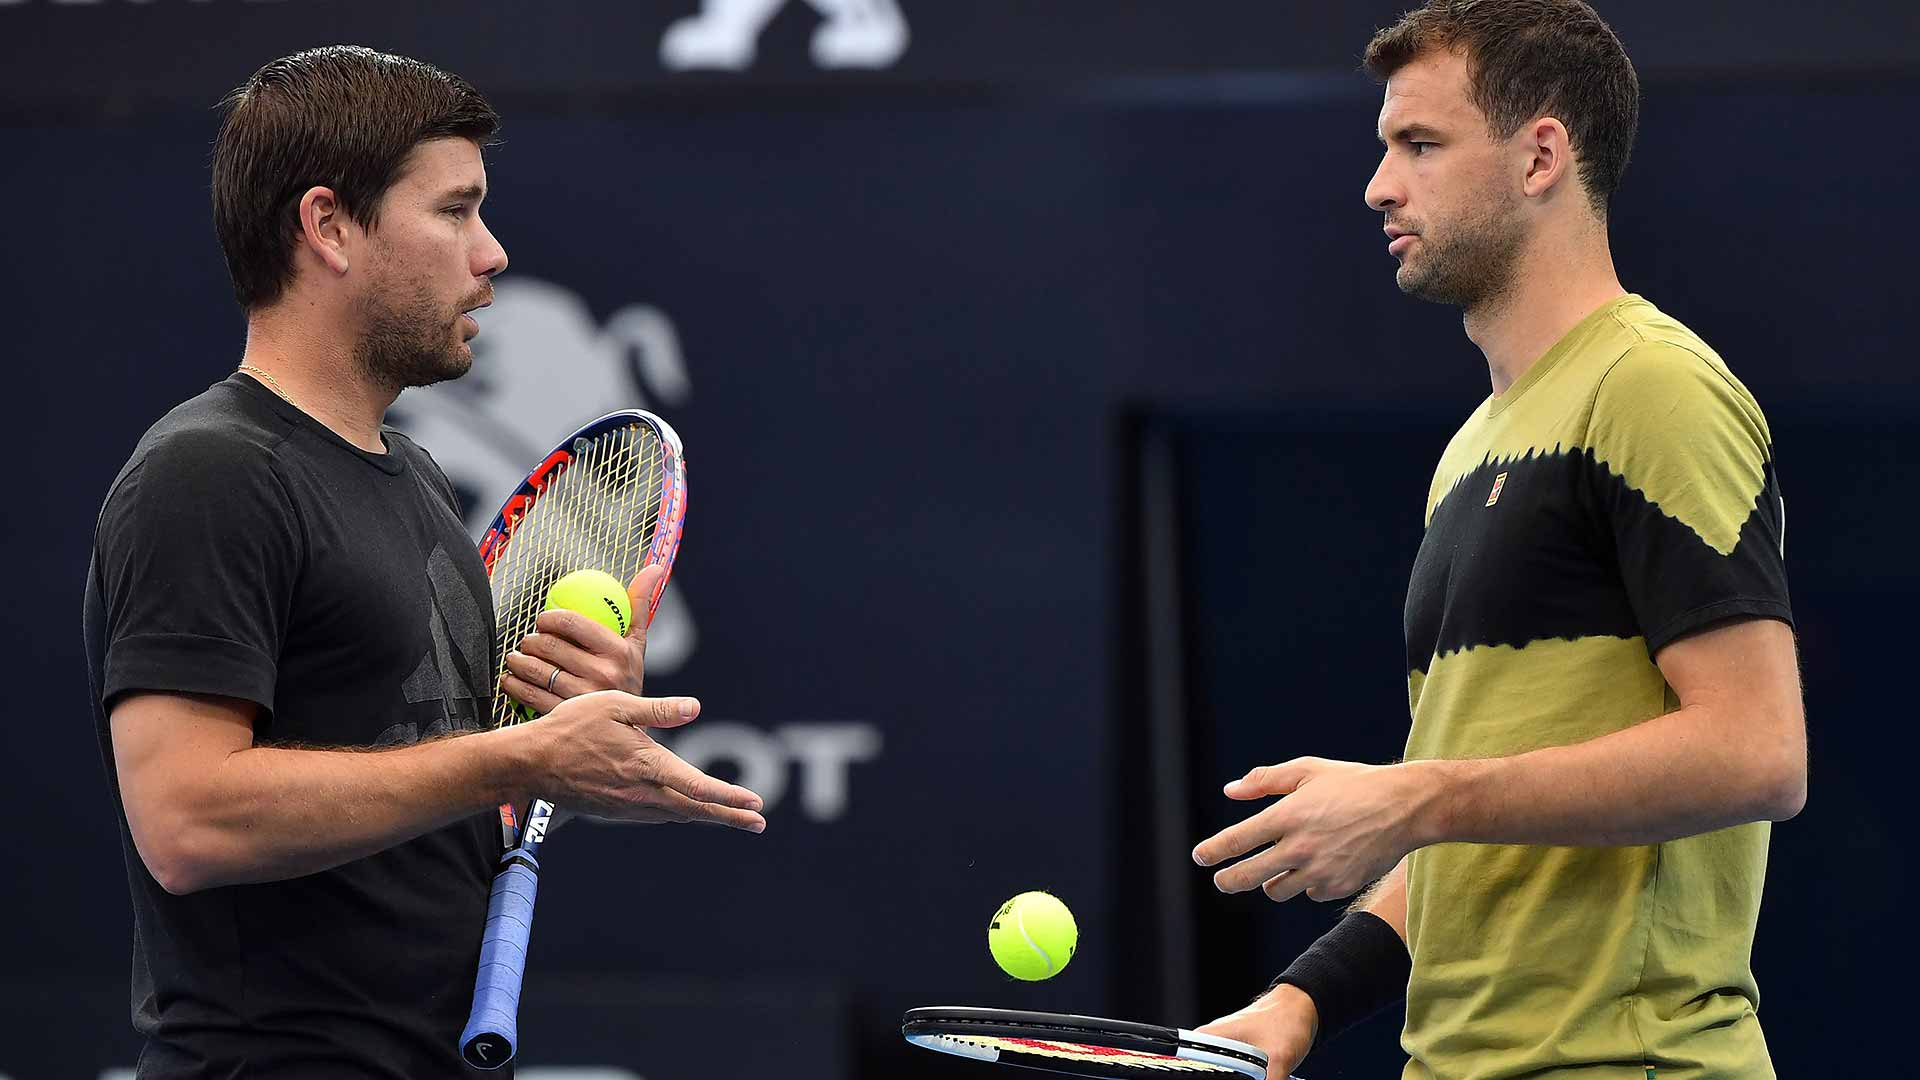 Dani Vallverdu and Grigor Dimitrov had worked together since 2016.